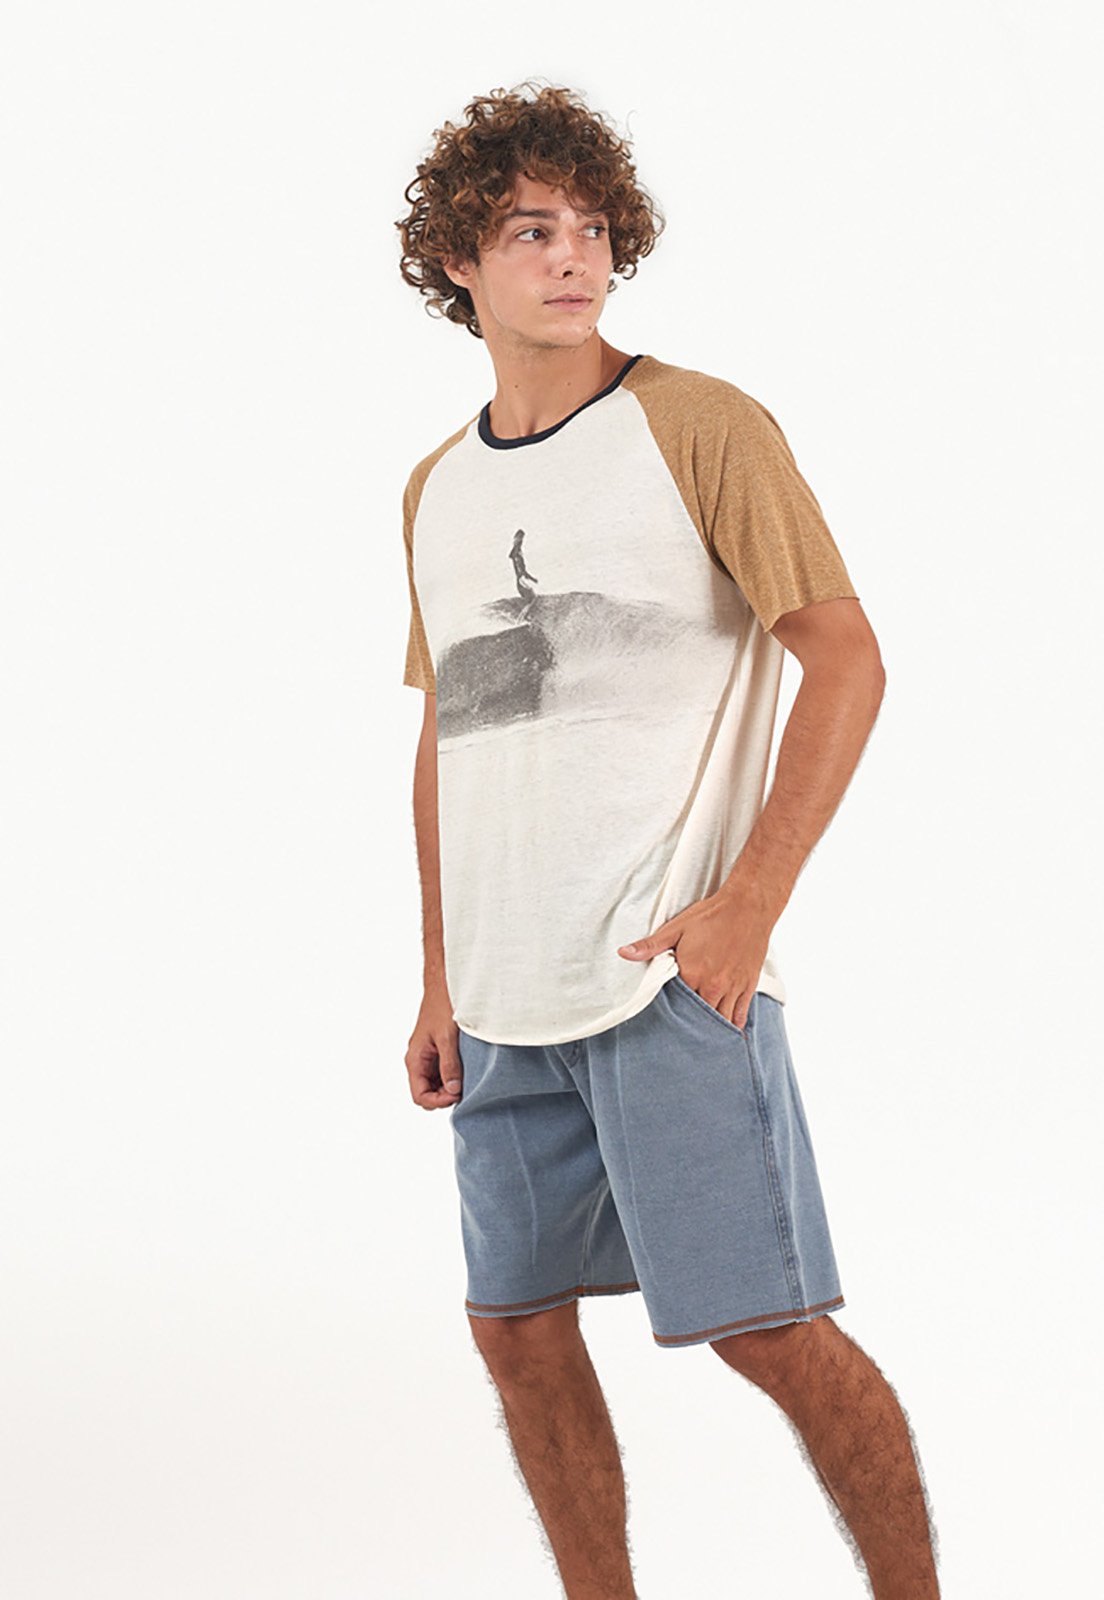 T-Shirt 9 FT melty  - melty surf & Co.